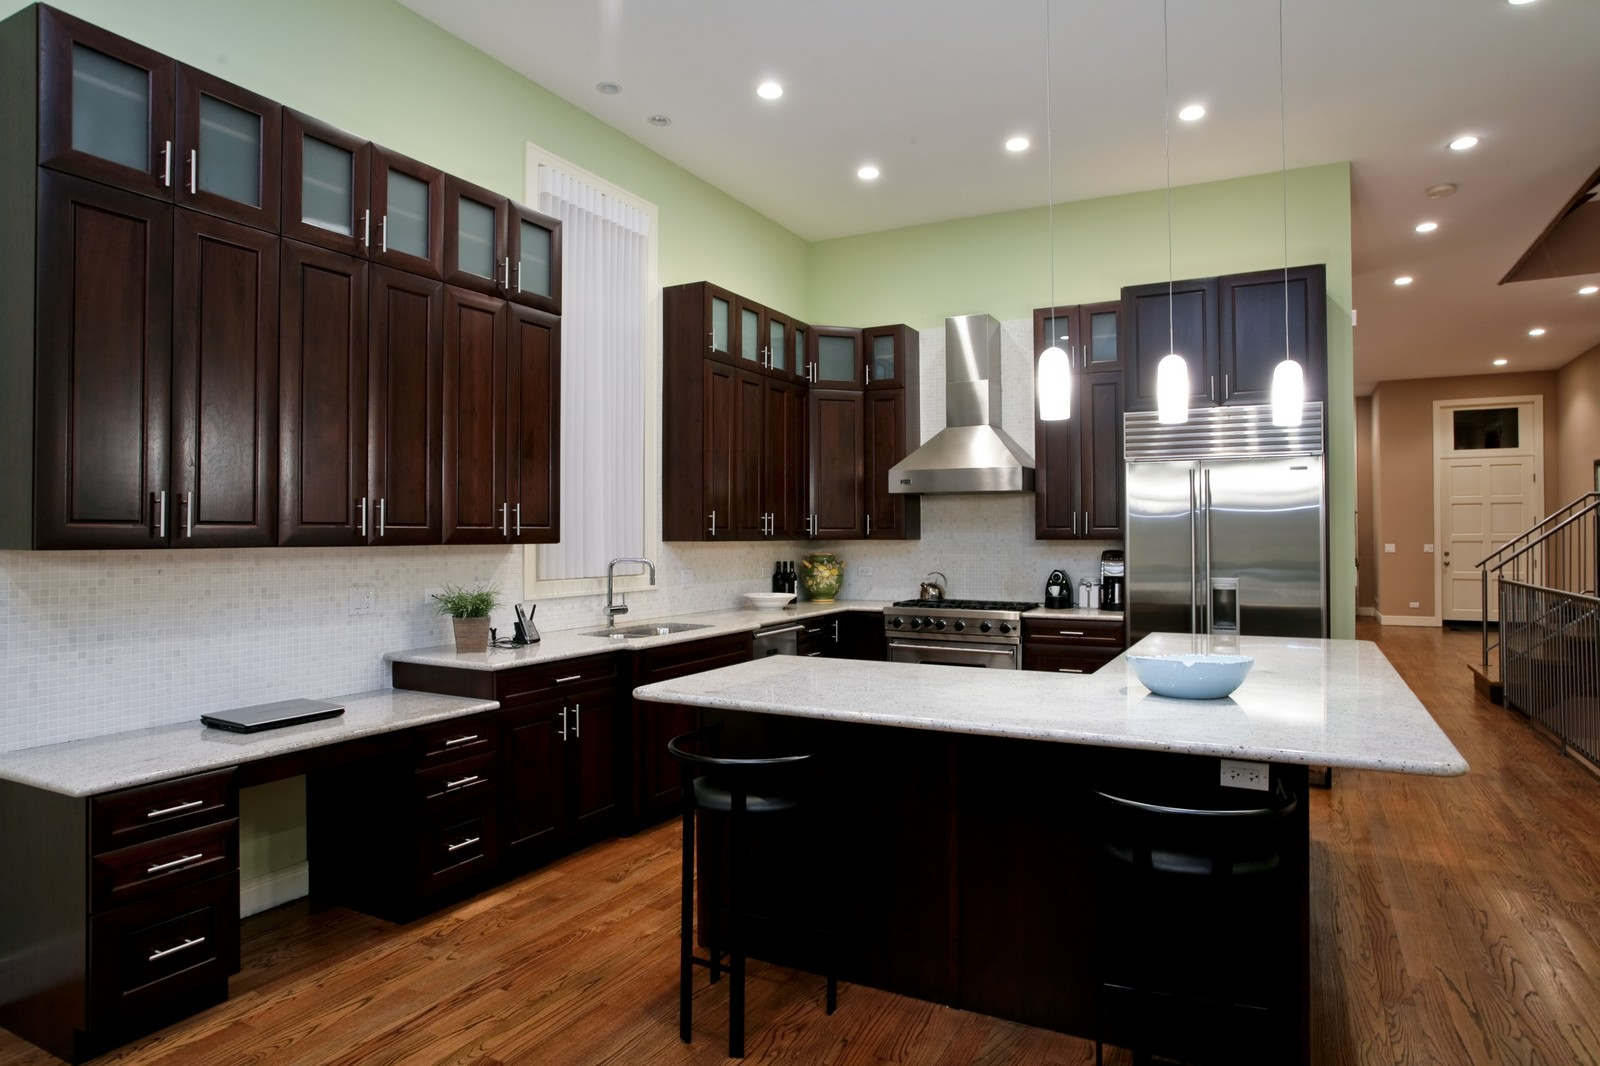 Real Estate Photography - 2340 W Ohio, Chicago, IL, 60612 - Kitchen